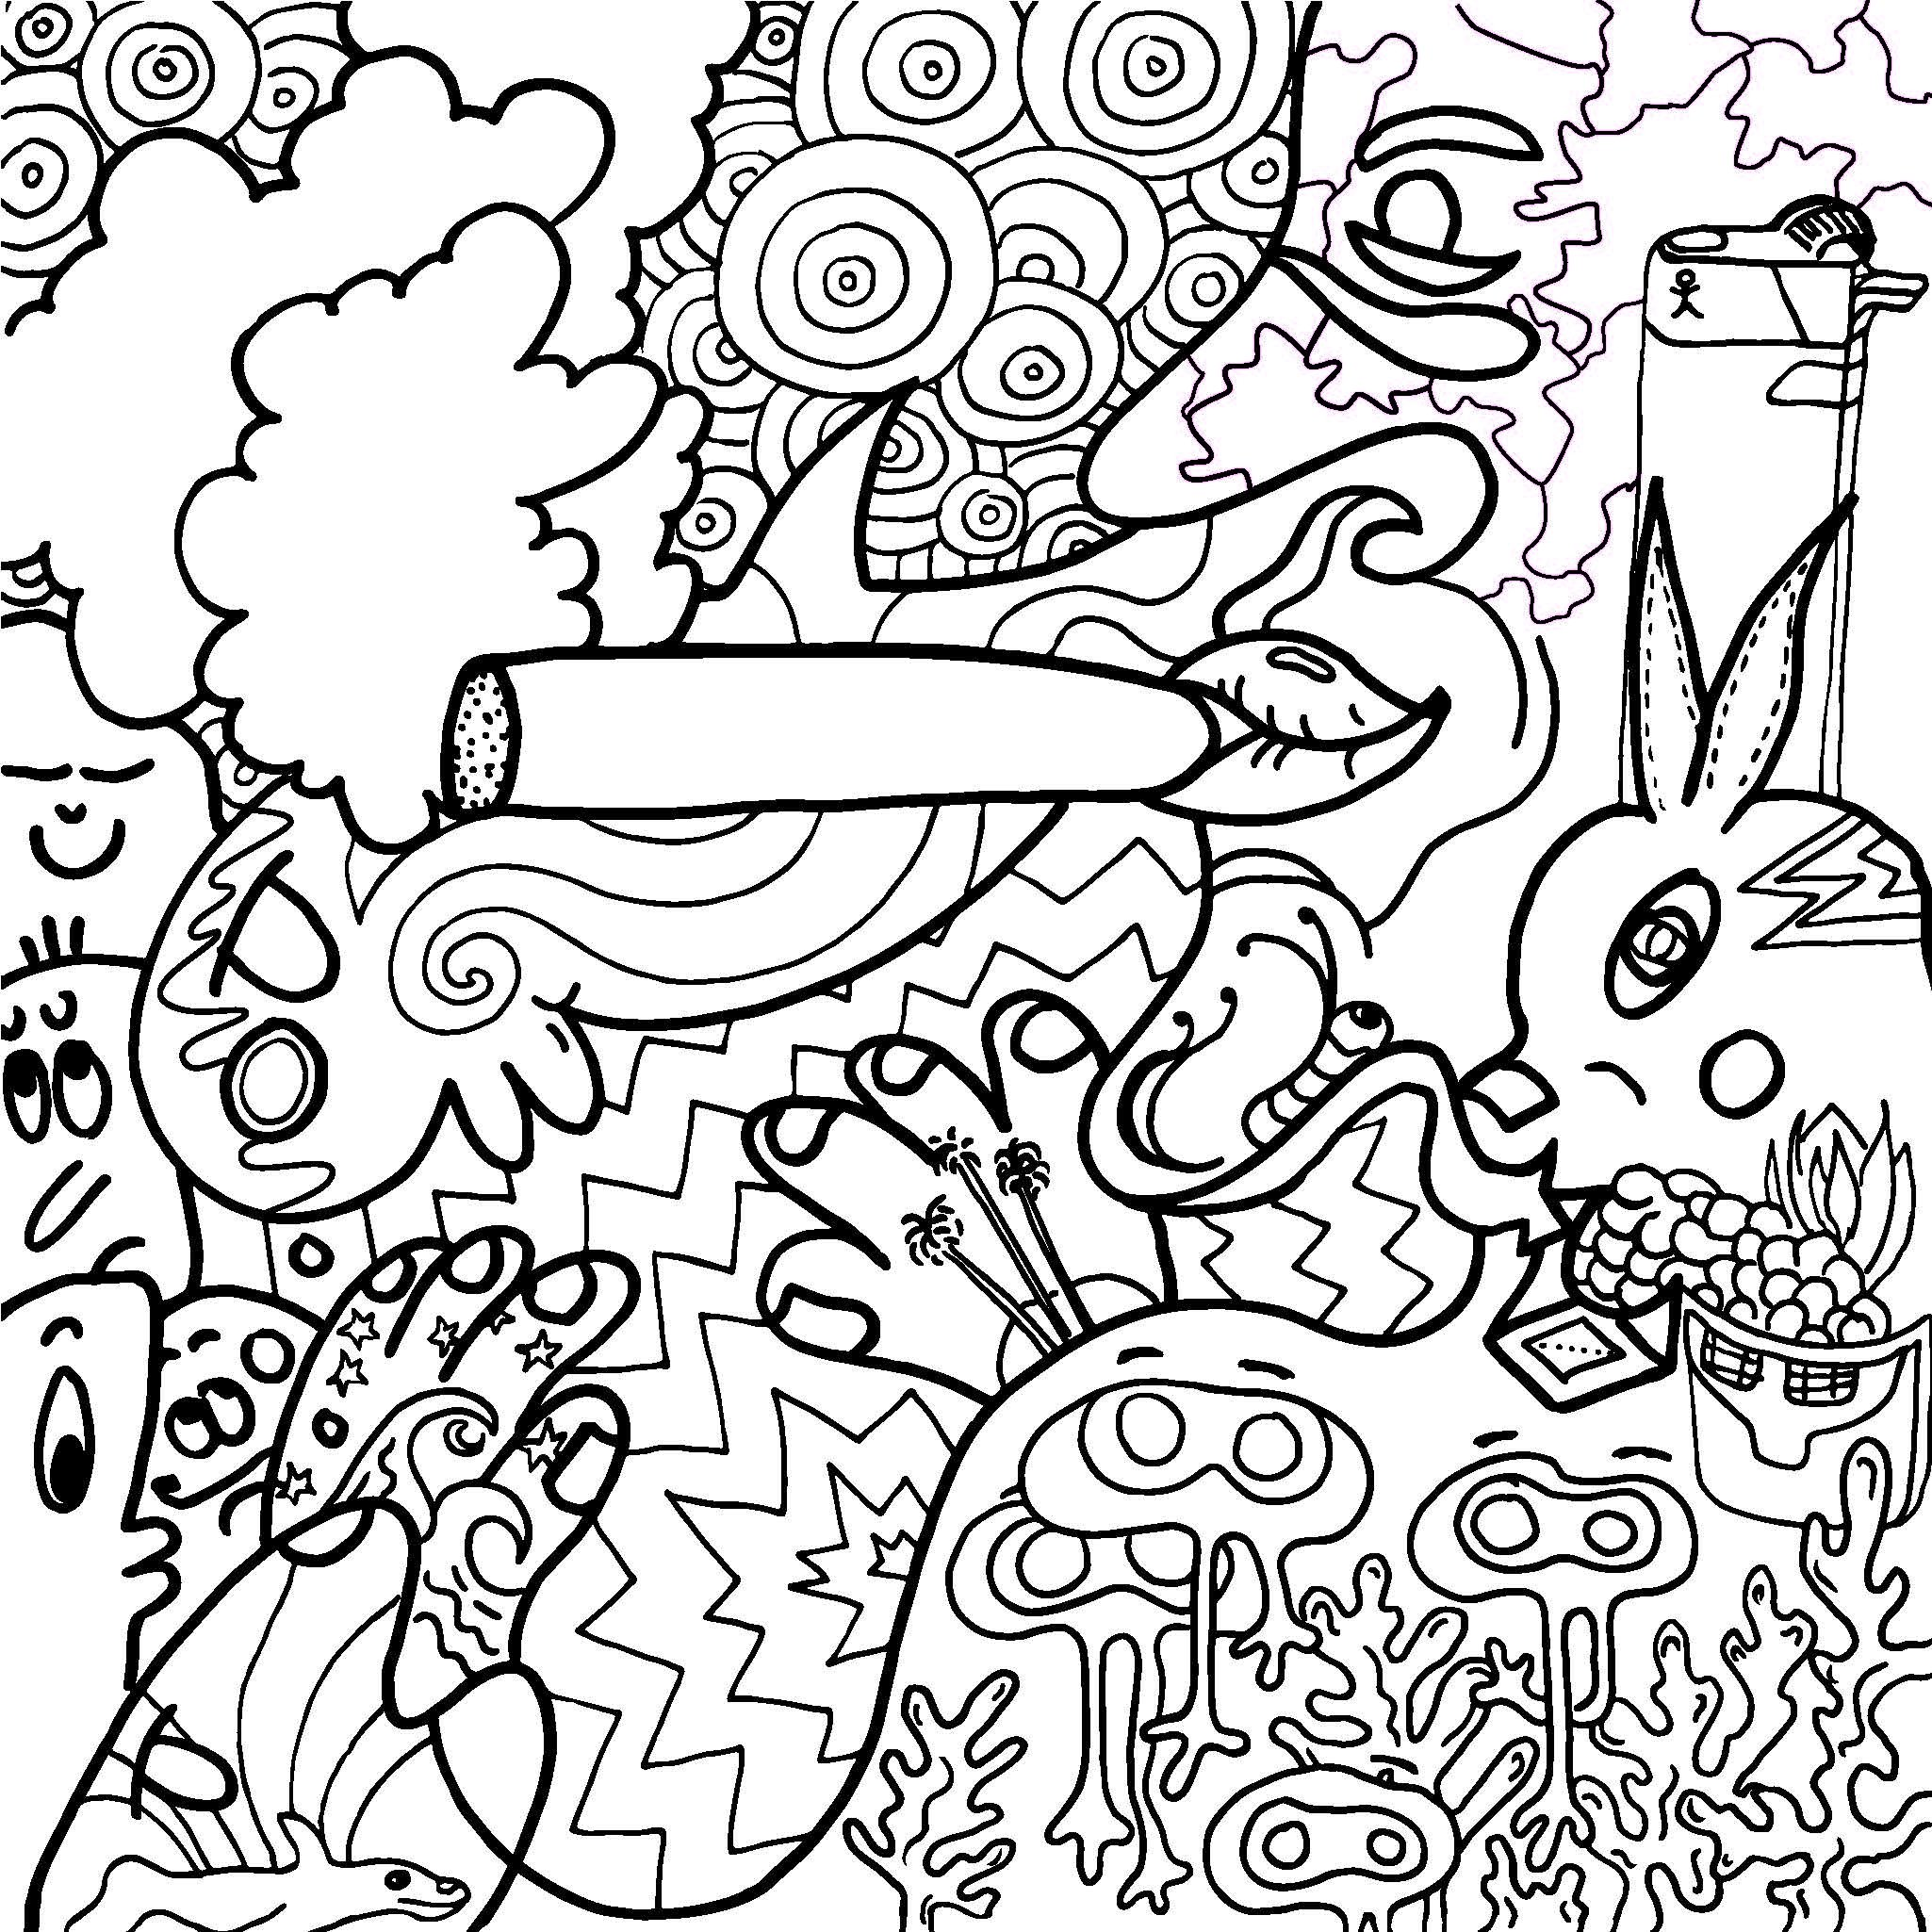 stoner trippy weed coloring pages - photo#6